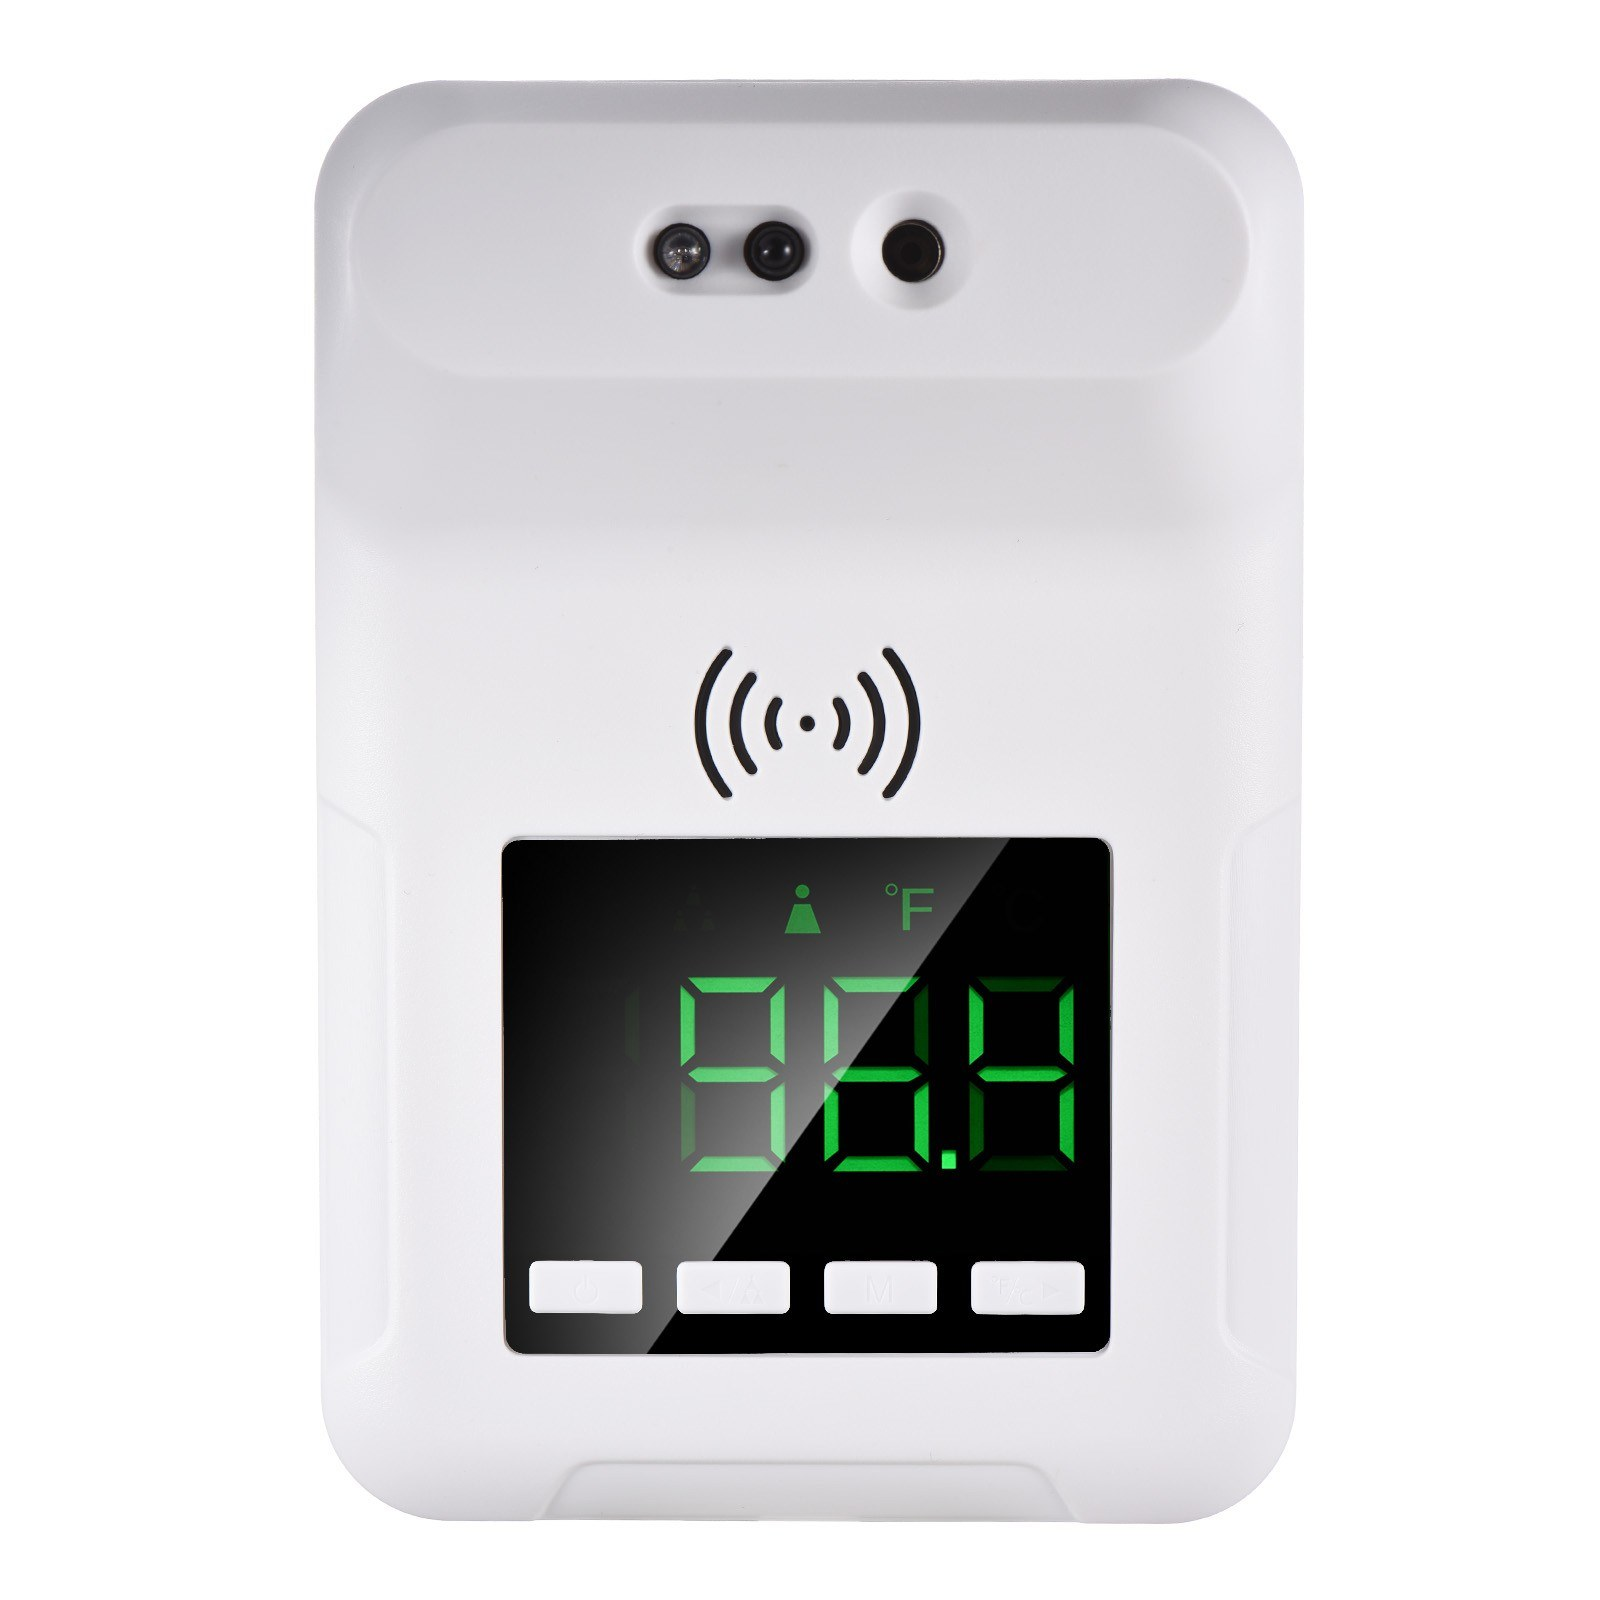 Tomtop - 41% OFF Touchless IR Thermometer 2 Power Ways 3 Fixations, Free Shipping $16.49